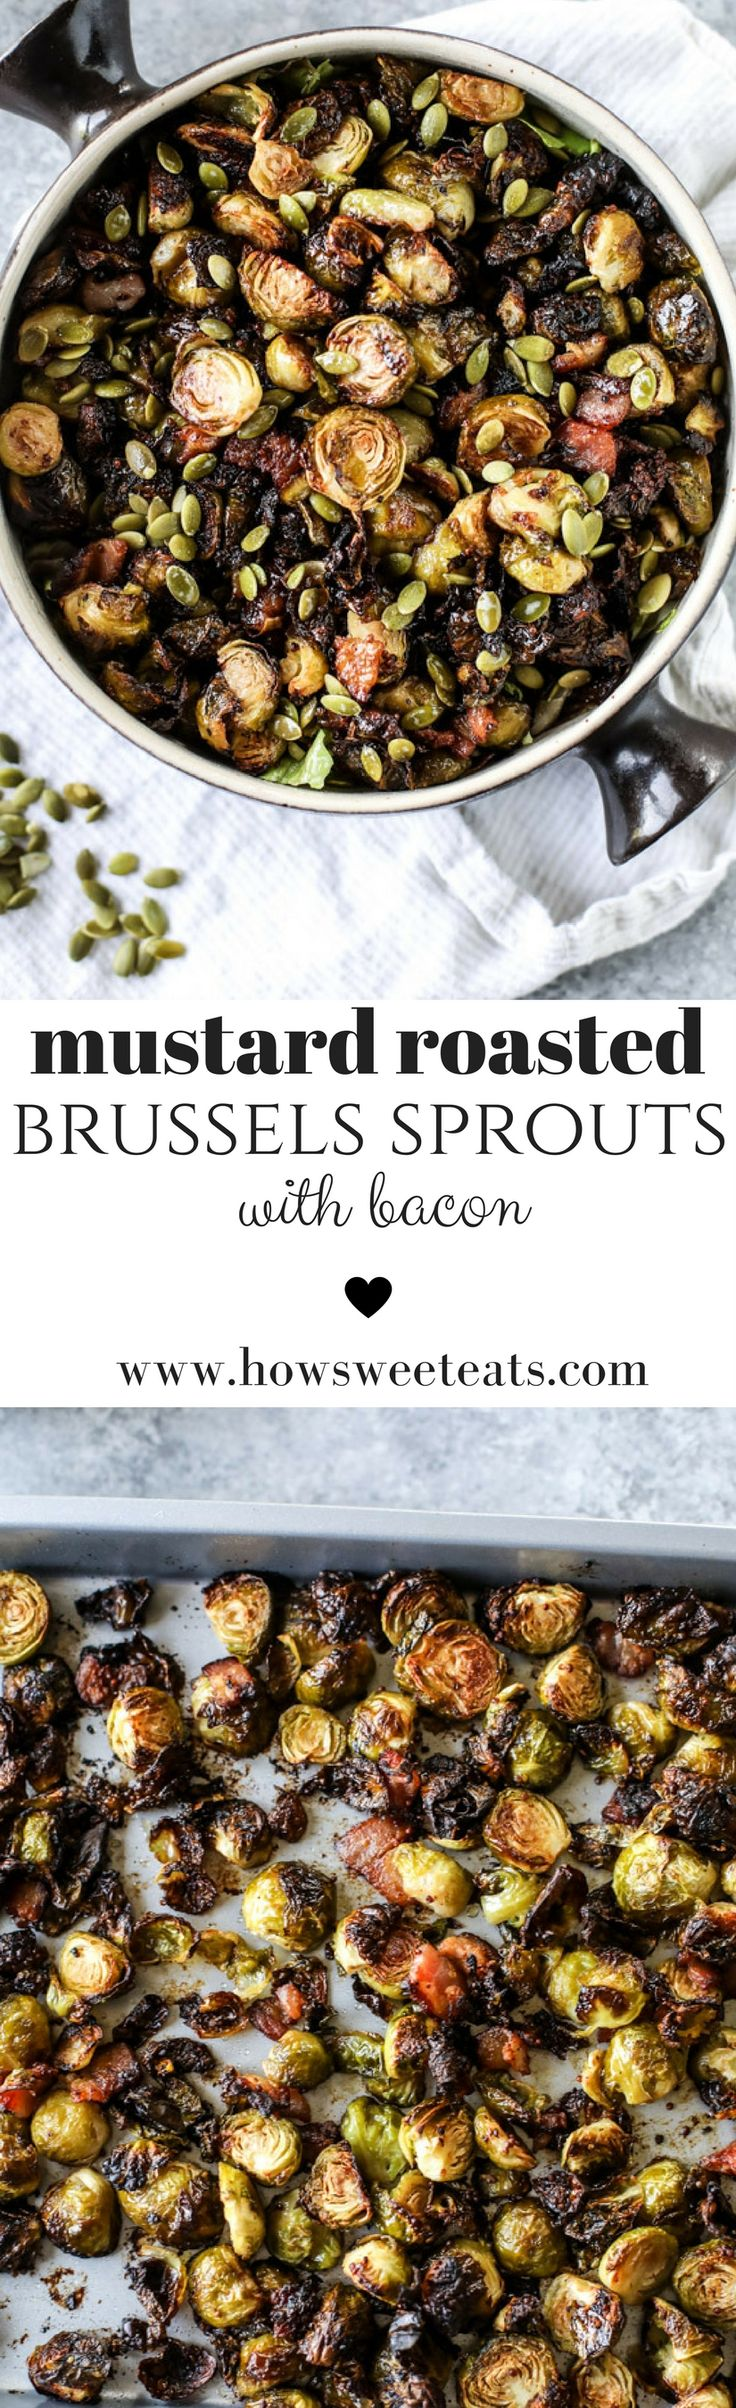 Mustard Roasted Brussels Sprouts with Bacon I howsweeteats.com @howsweeteats #thanksgiving